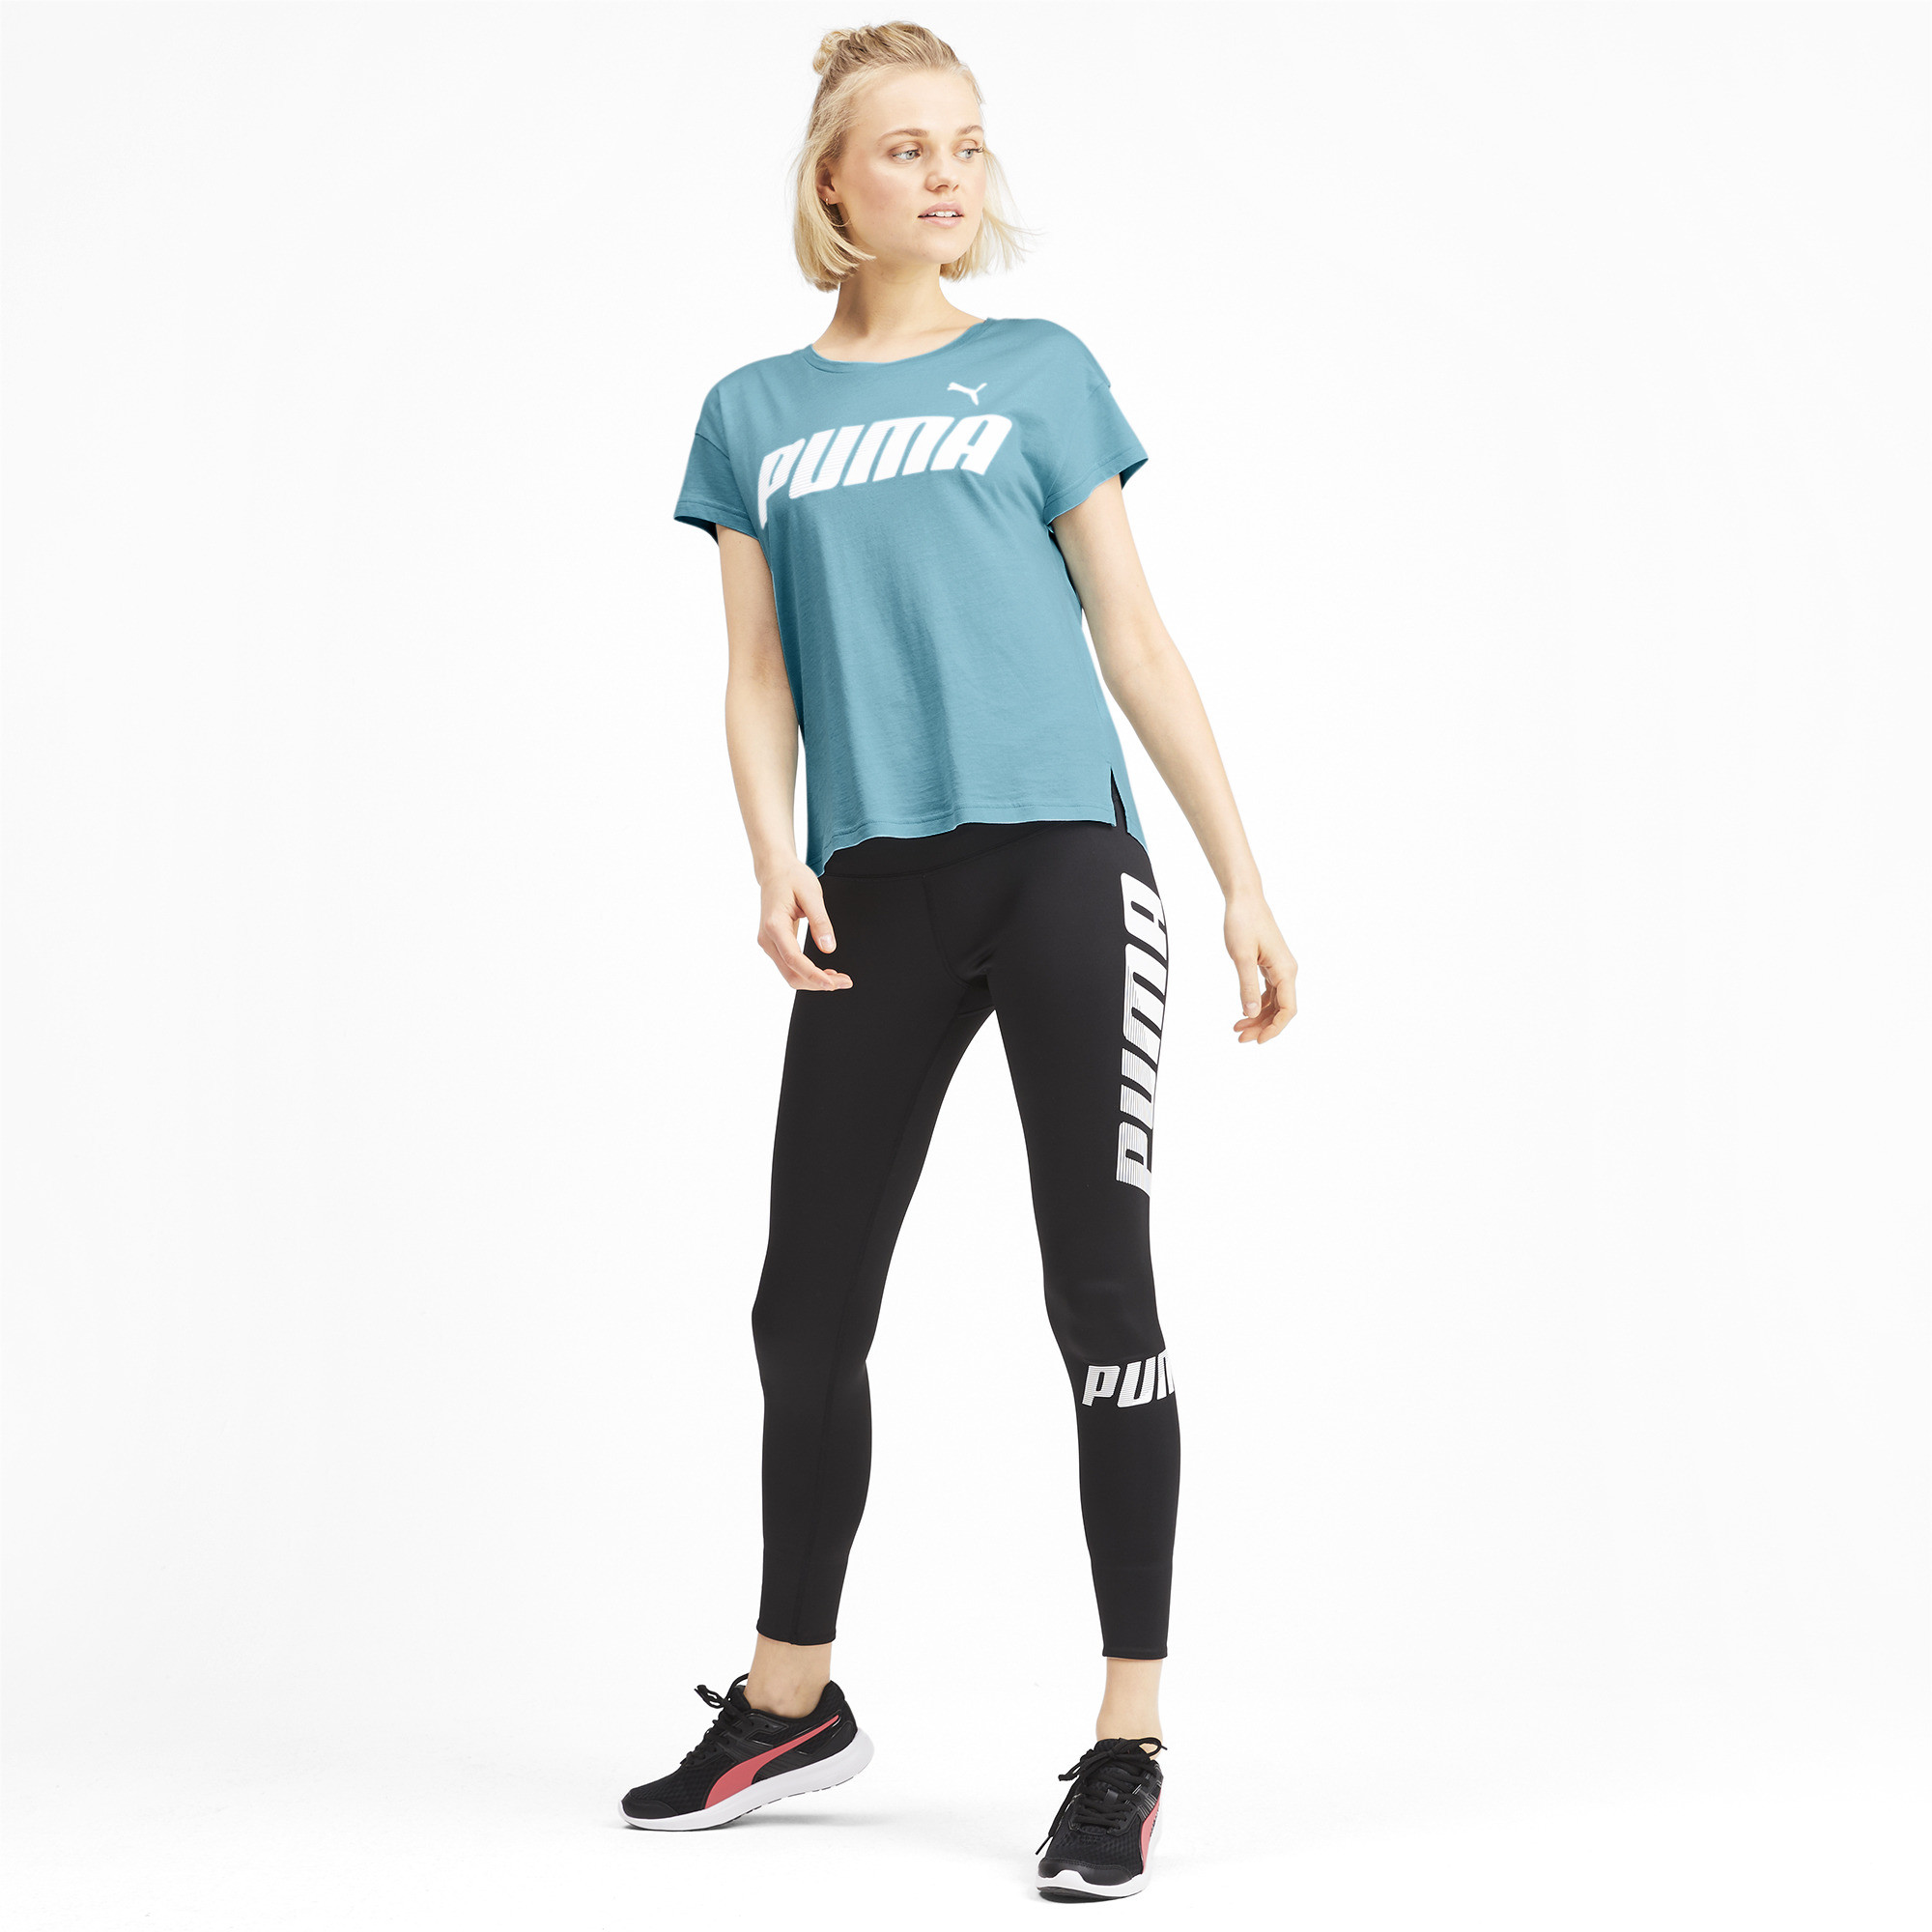 PUMA-Modern-Sports-Women-039-s-Graphic-Tee-Women-Tee-Basics thumbnail 16